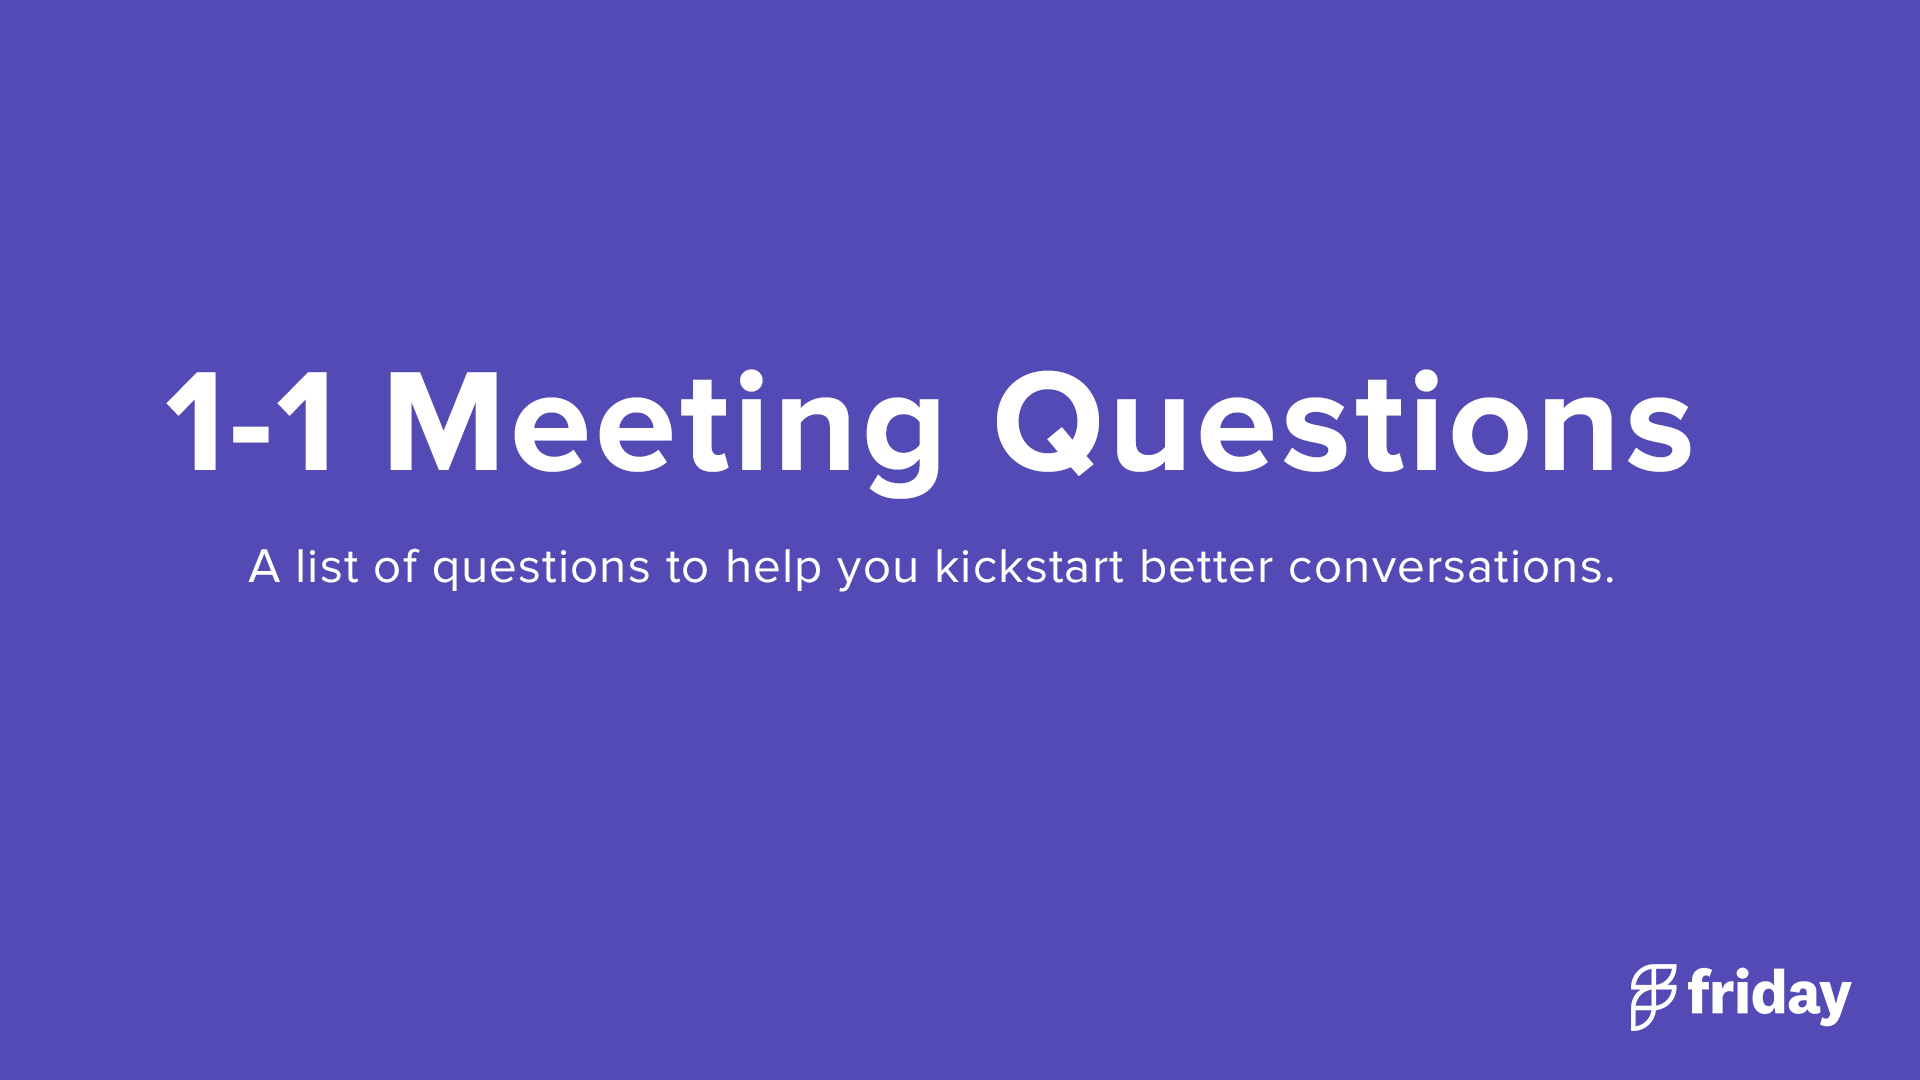 1-1 meeting questions